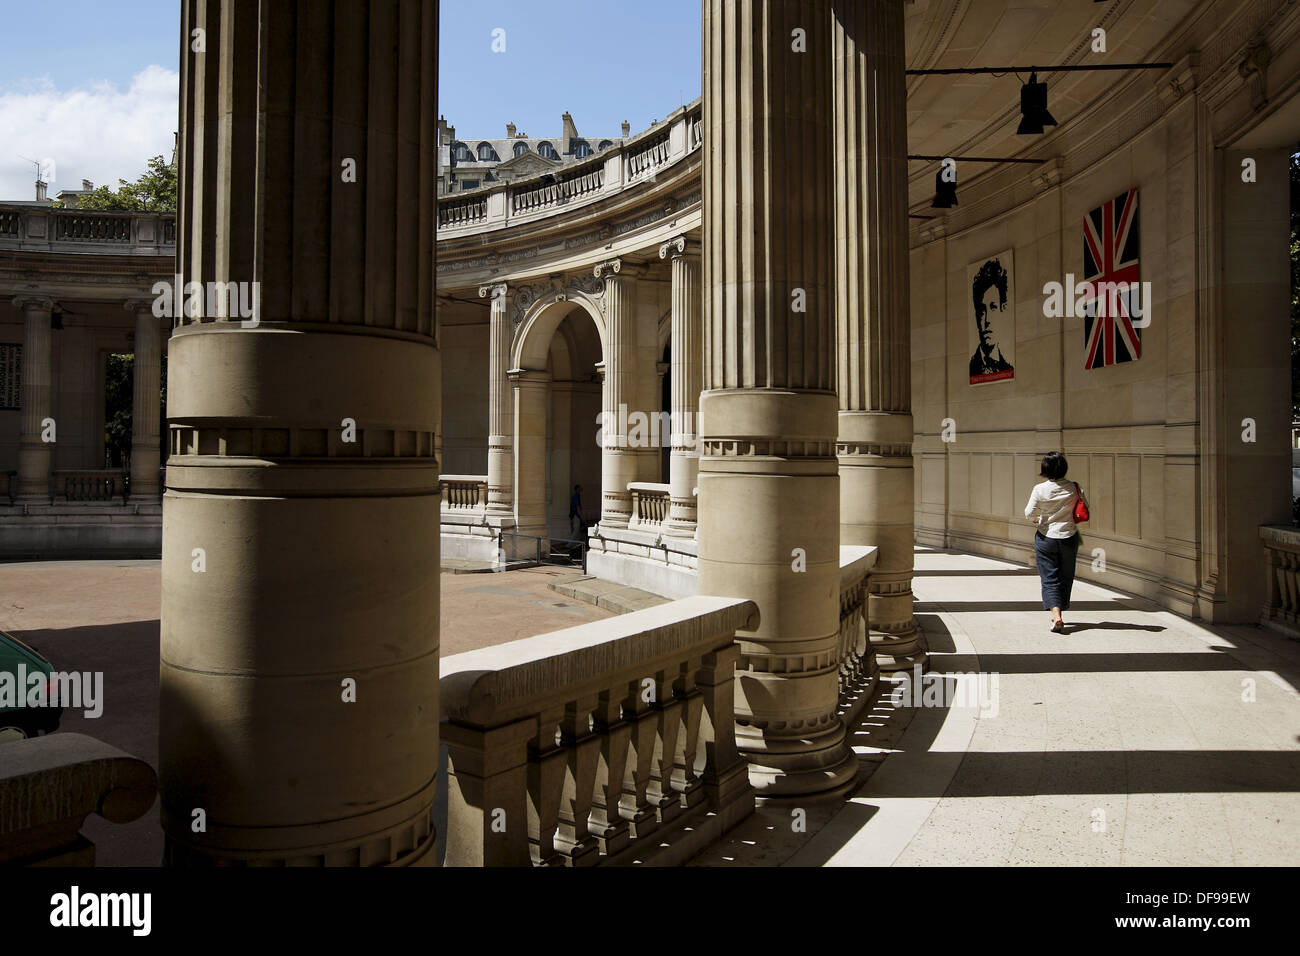 France. Paris. A visitor in art pieces decorated round hall way of front entrance of Musee de la Mode et du Costume Stock Photo